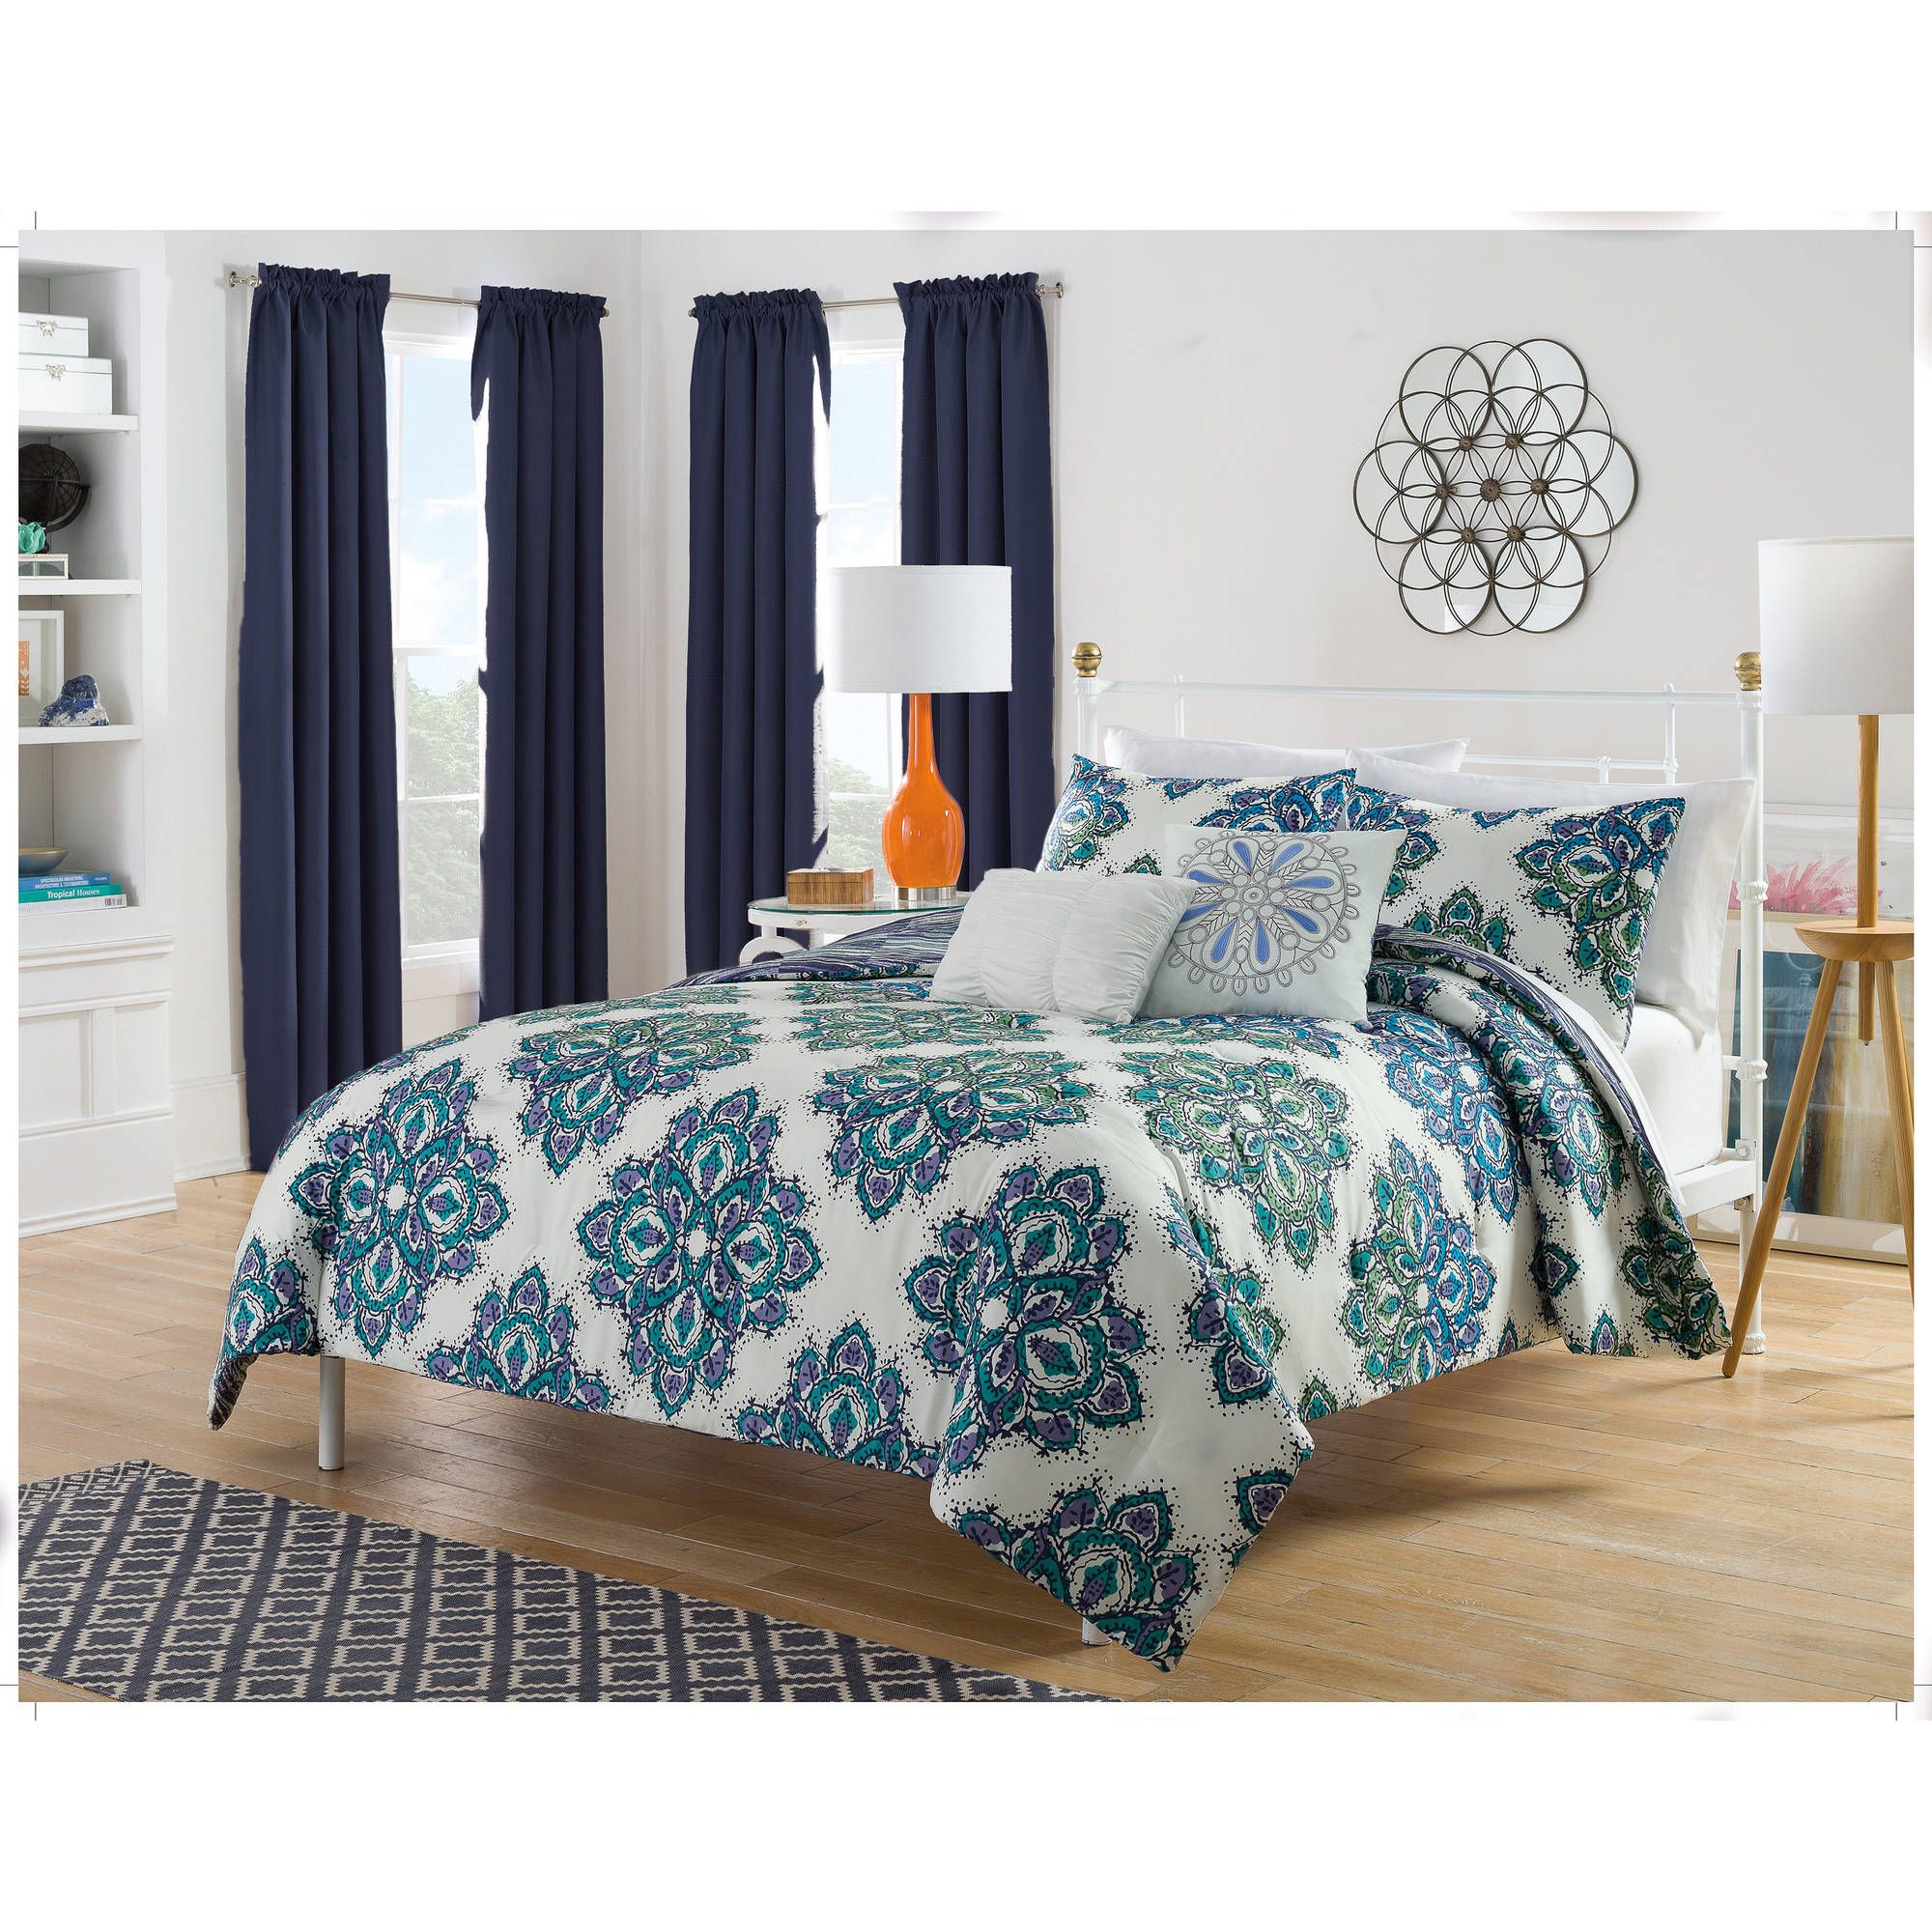 Harmony At Home Martina 5-Piece Reversible Bedding Comforter Set